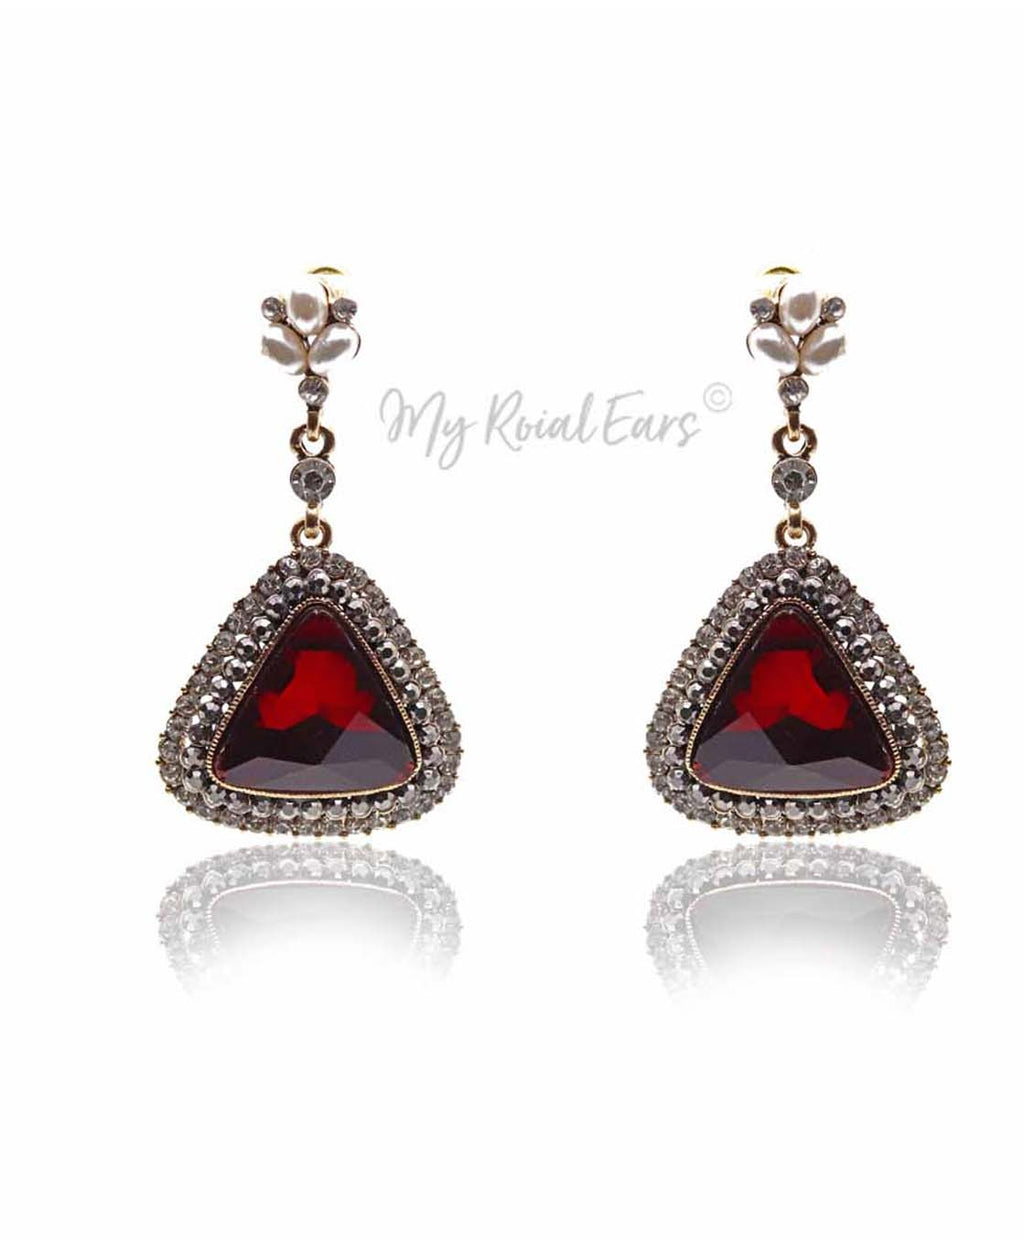 Q.LOUISE-sophisticated triangular dangle drop bridal earrings - My Roial Ears LTD